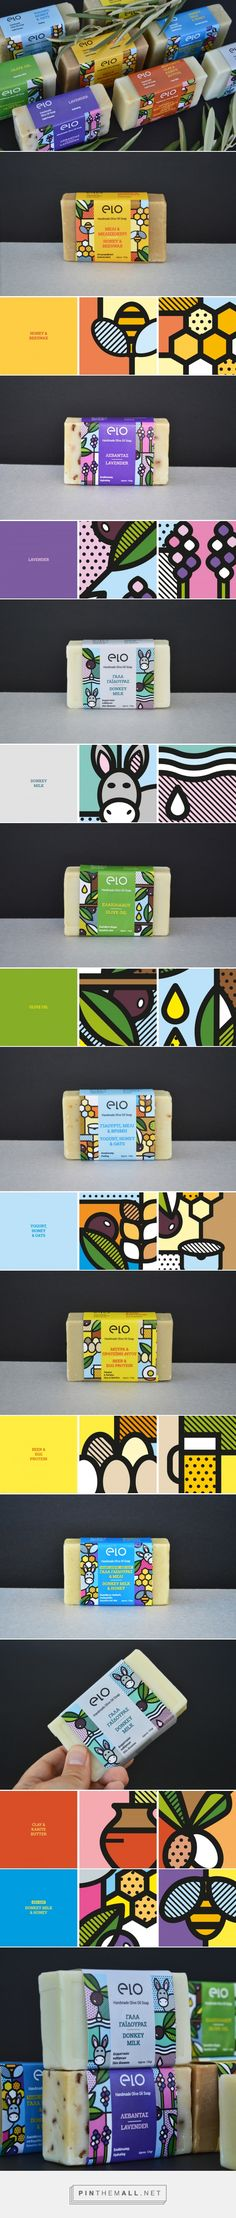 Elo Soaps | Main Packaging design by Mike Karolos